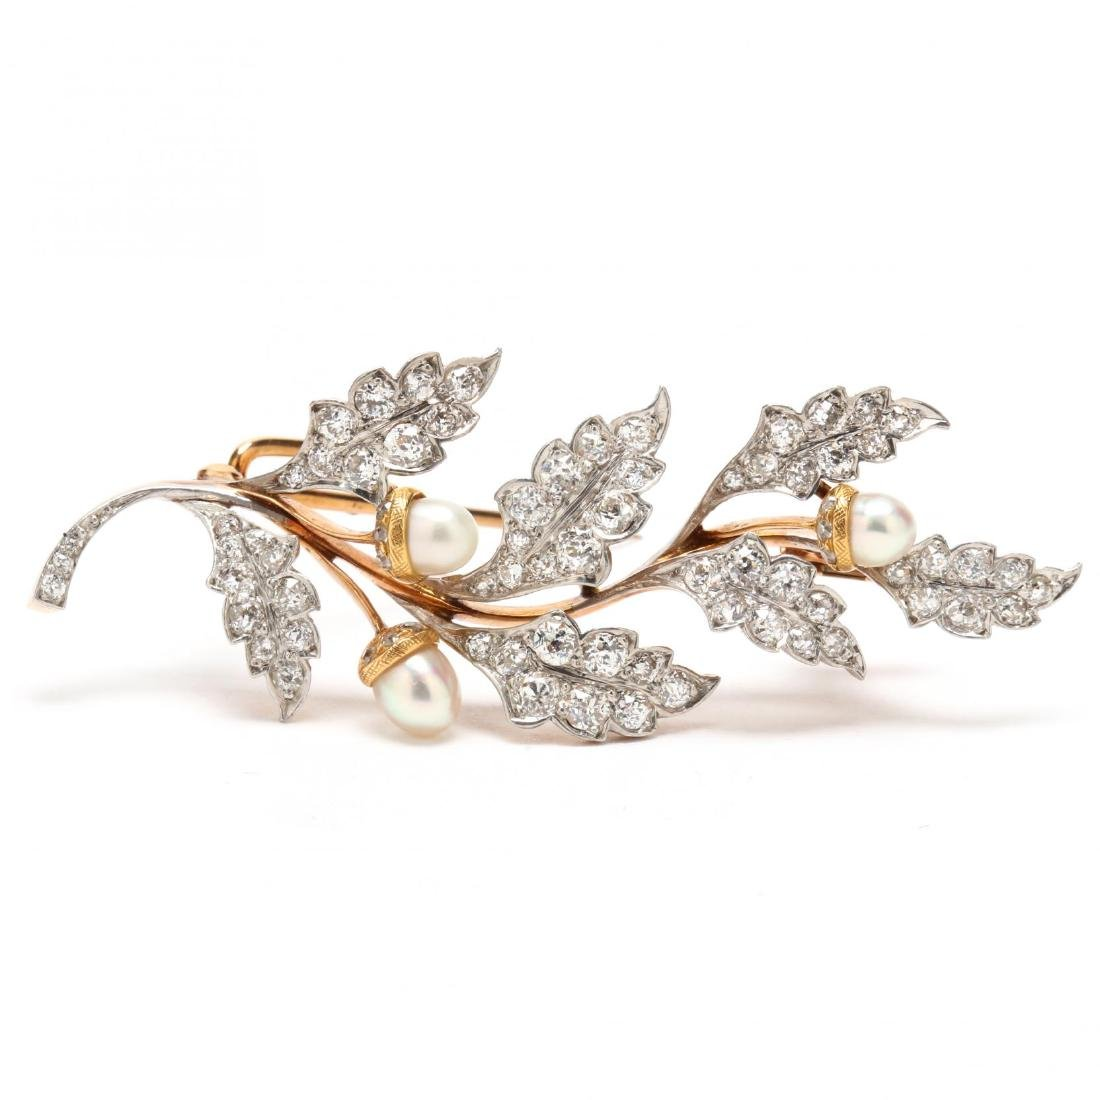 Antique Platinum Topped Gold, Diamond and Pearl Brooch,